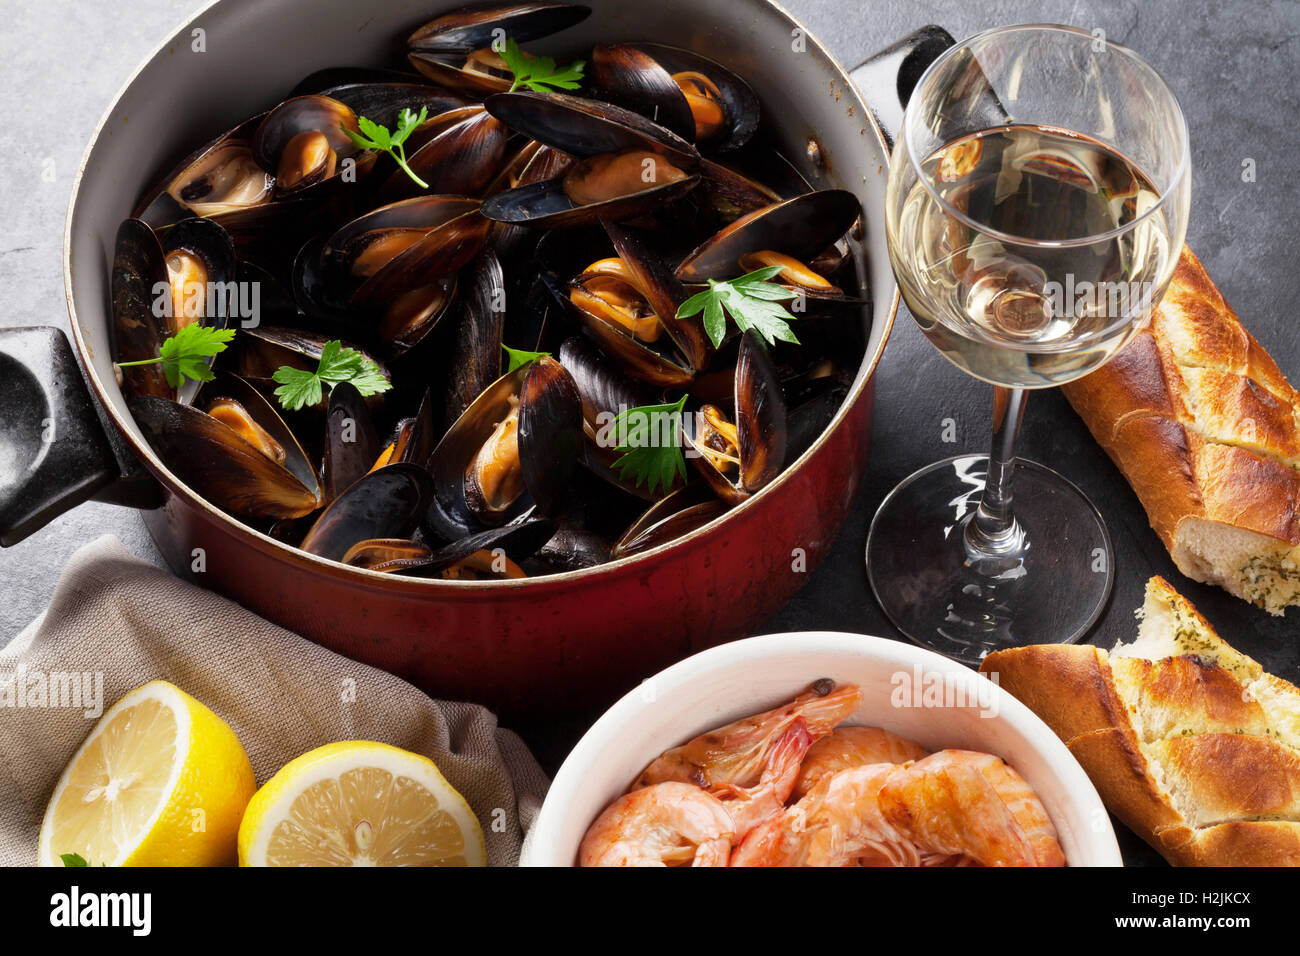 Mussels, shrimps and white wine on stone table - Stock Image